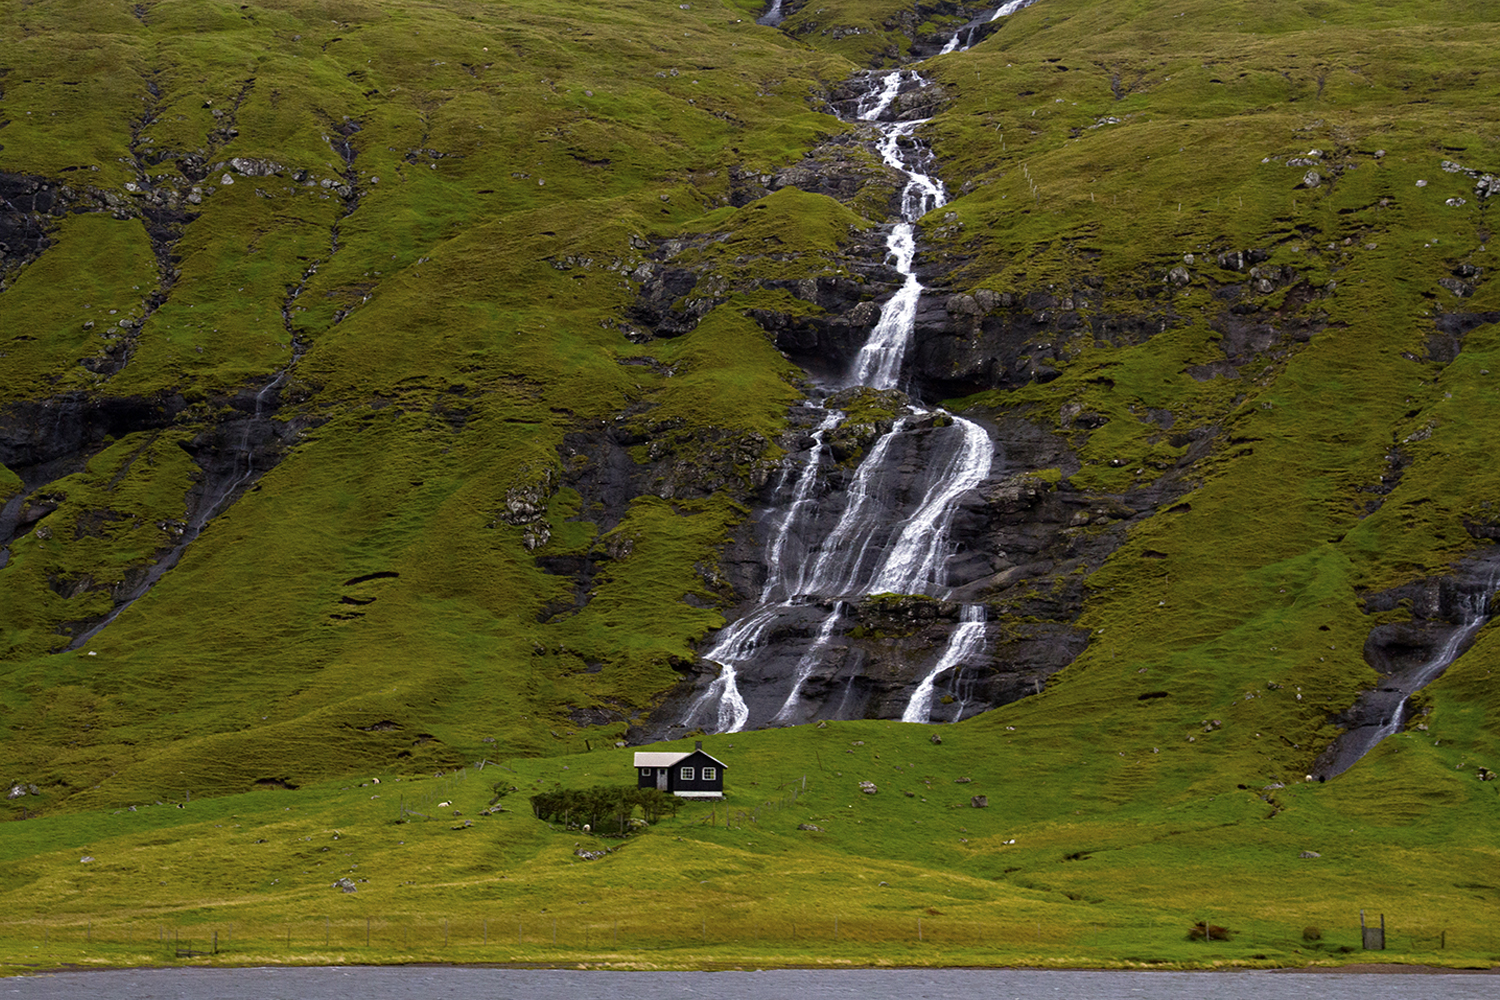 Faroe Islands Travel: Everything You Need to Know